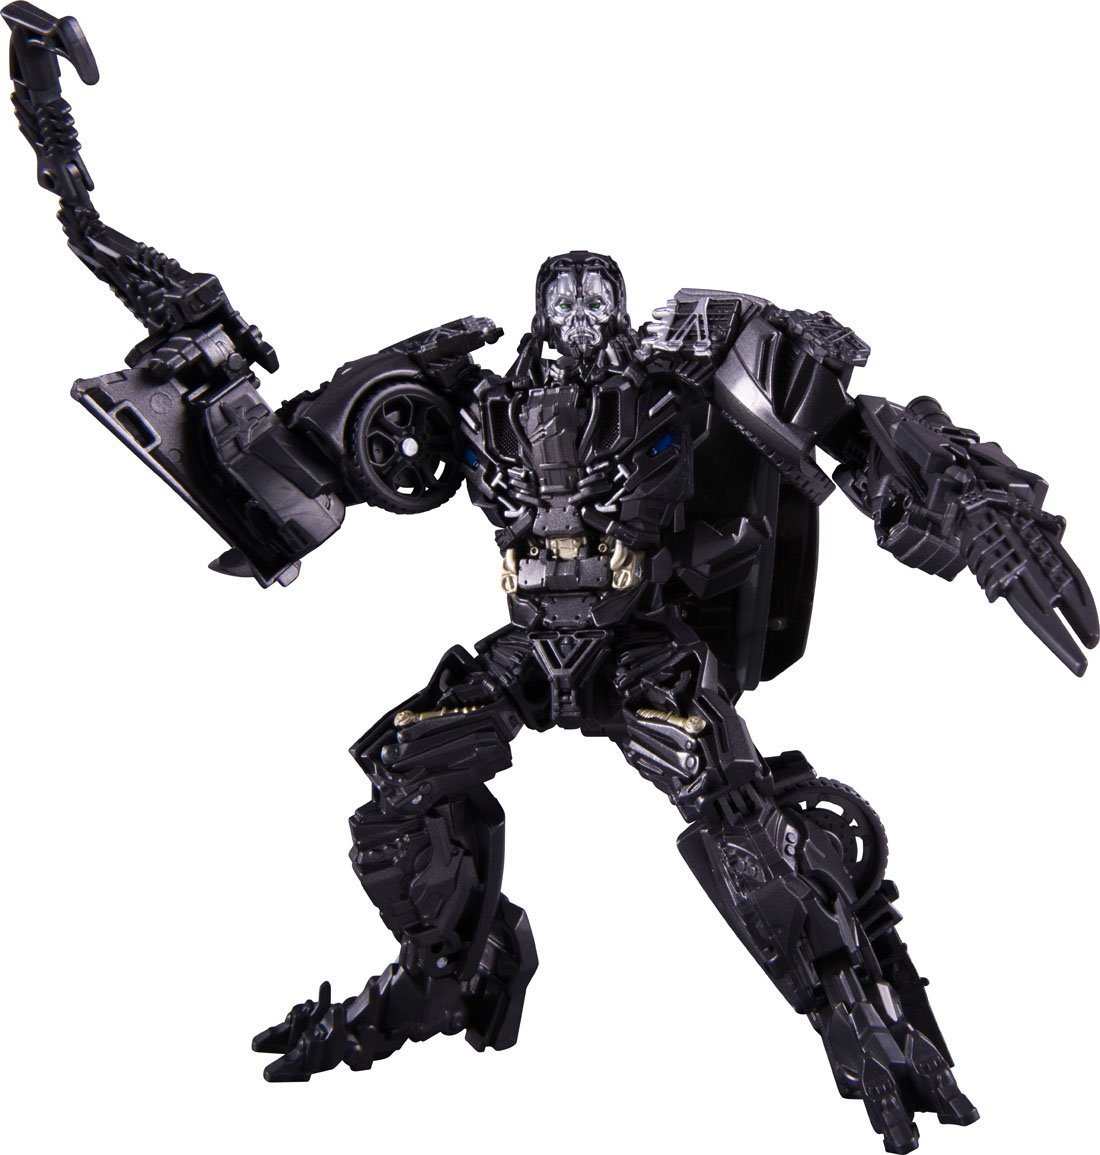 Takara Tomy Studio Series Wave 2 Listings And Stock Images ...